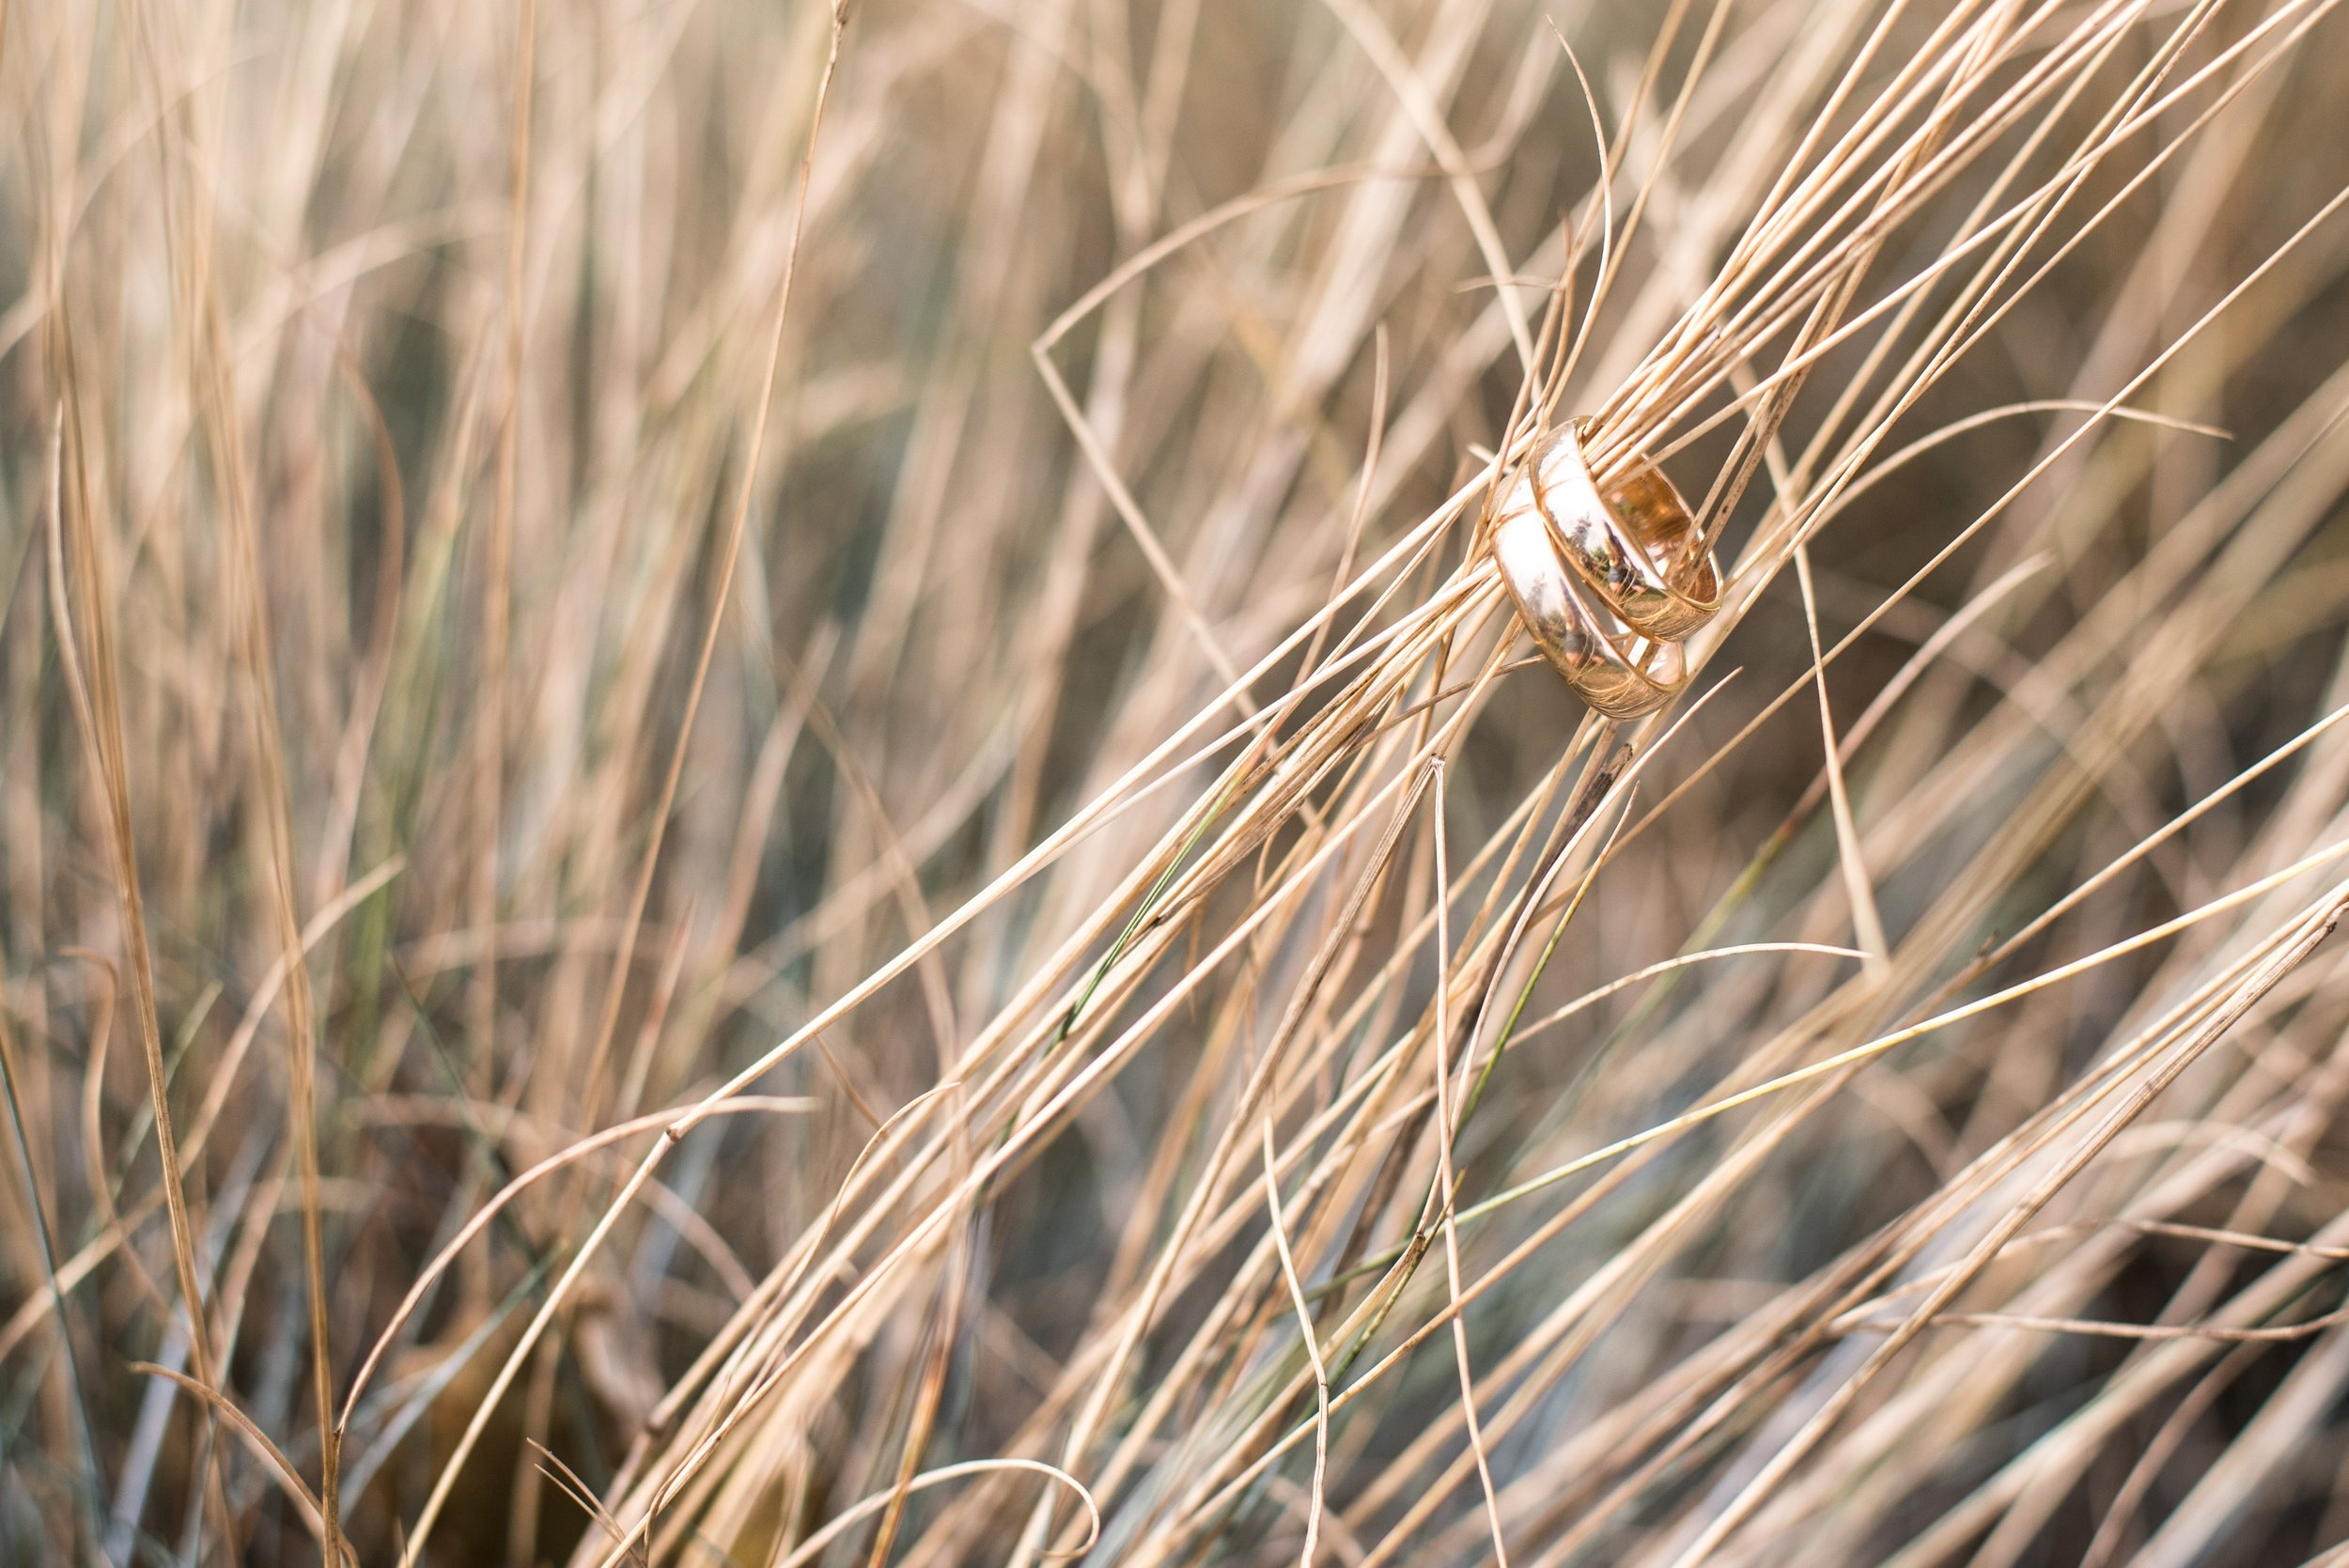 Use an ethically and environmentally friendly sourced ring.